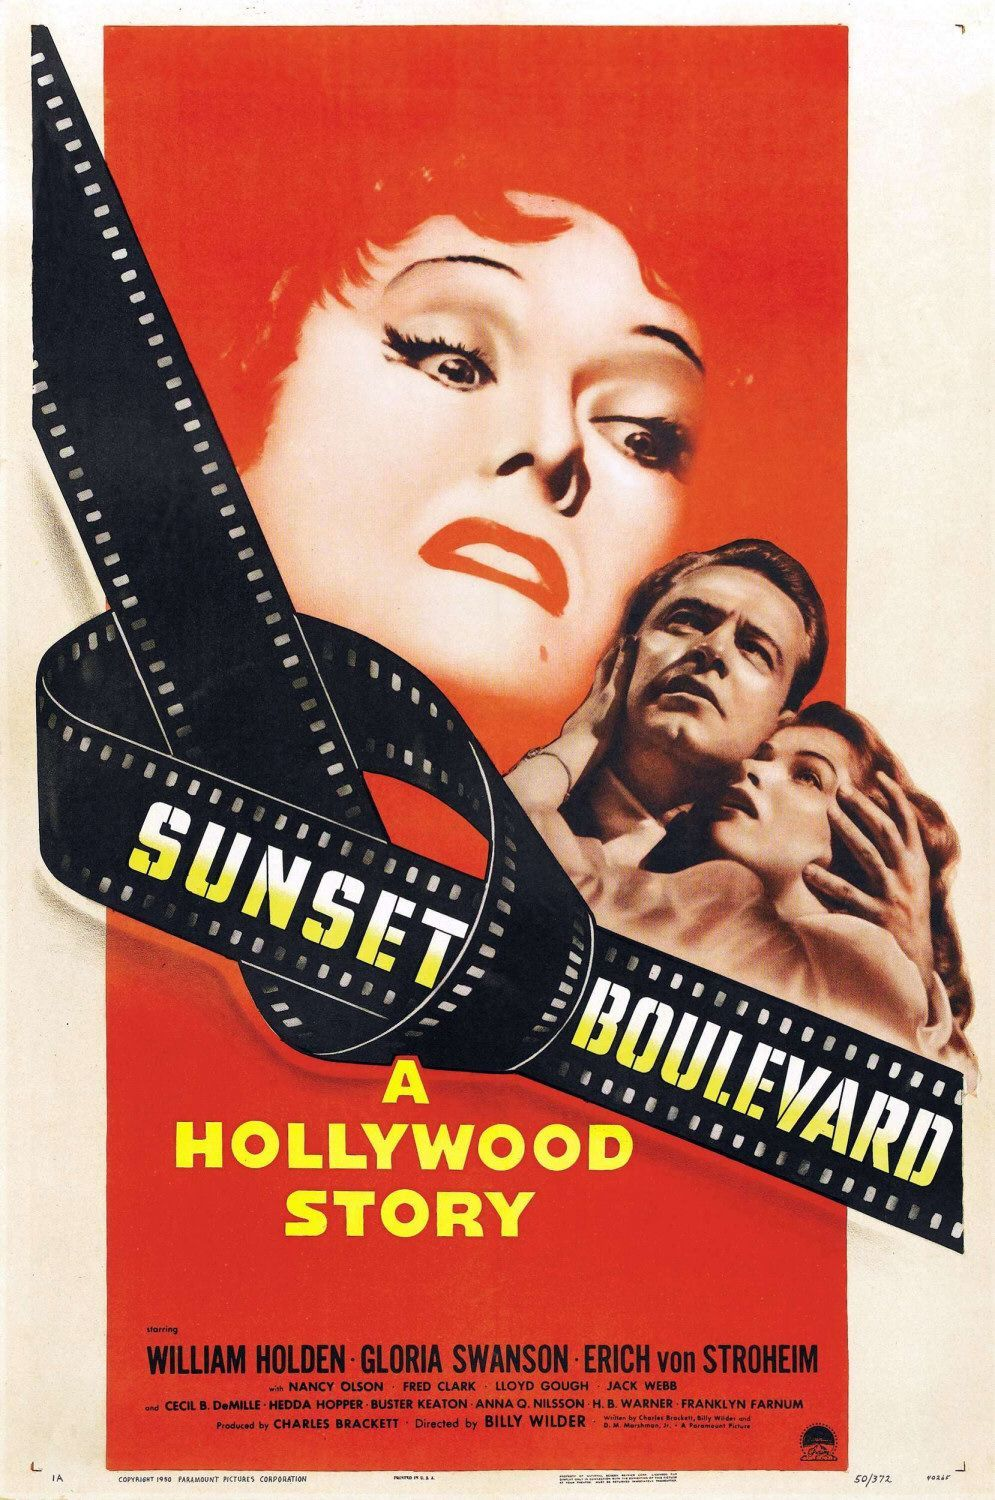 """Gloria Swanson """"Sunset Boulevard"""" - Before there was Fatal Attraction there was Gloria Swanson in Sunset Boulevard. This movie has some incredible jaw-dropping moments, and one can't help but be fiercely loyal to Norma Desmond, in-spite of her… errrr…eccentricities.Why is this a good """"breakup"""" classic movie?Because Norma Desmond. That is all."""